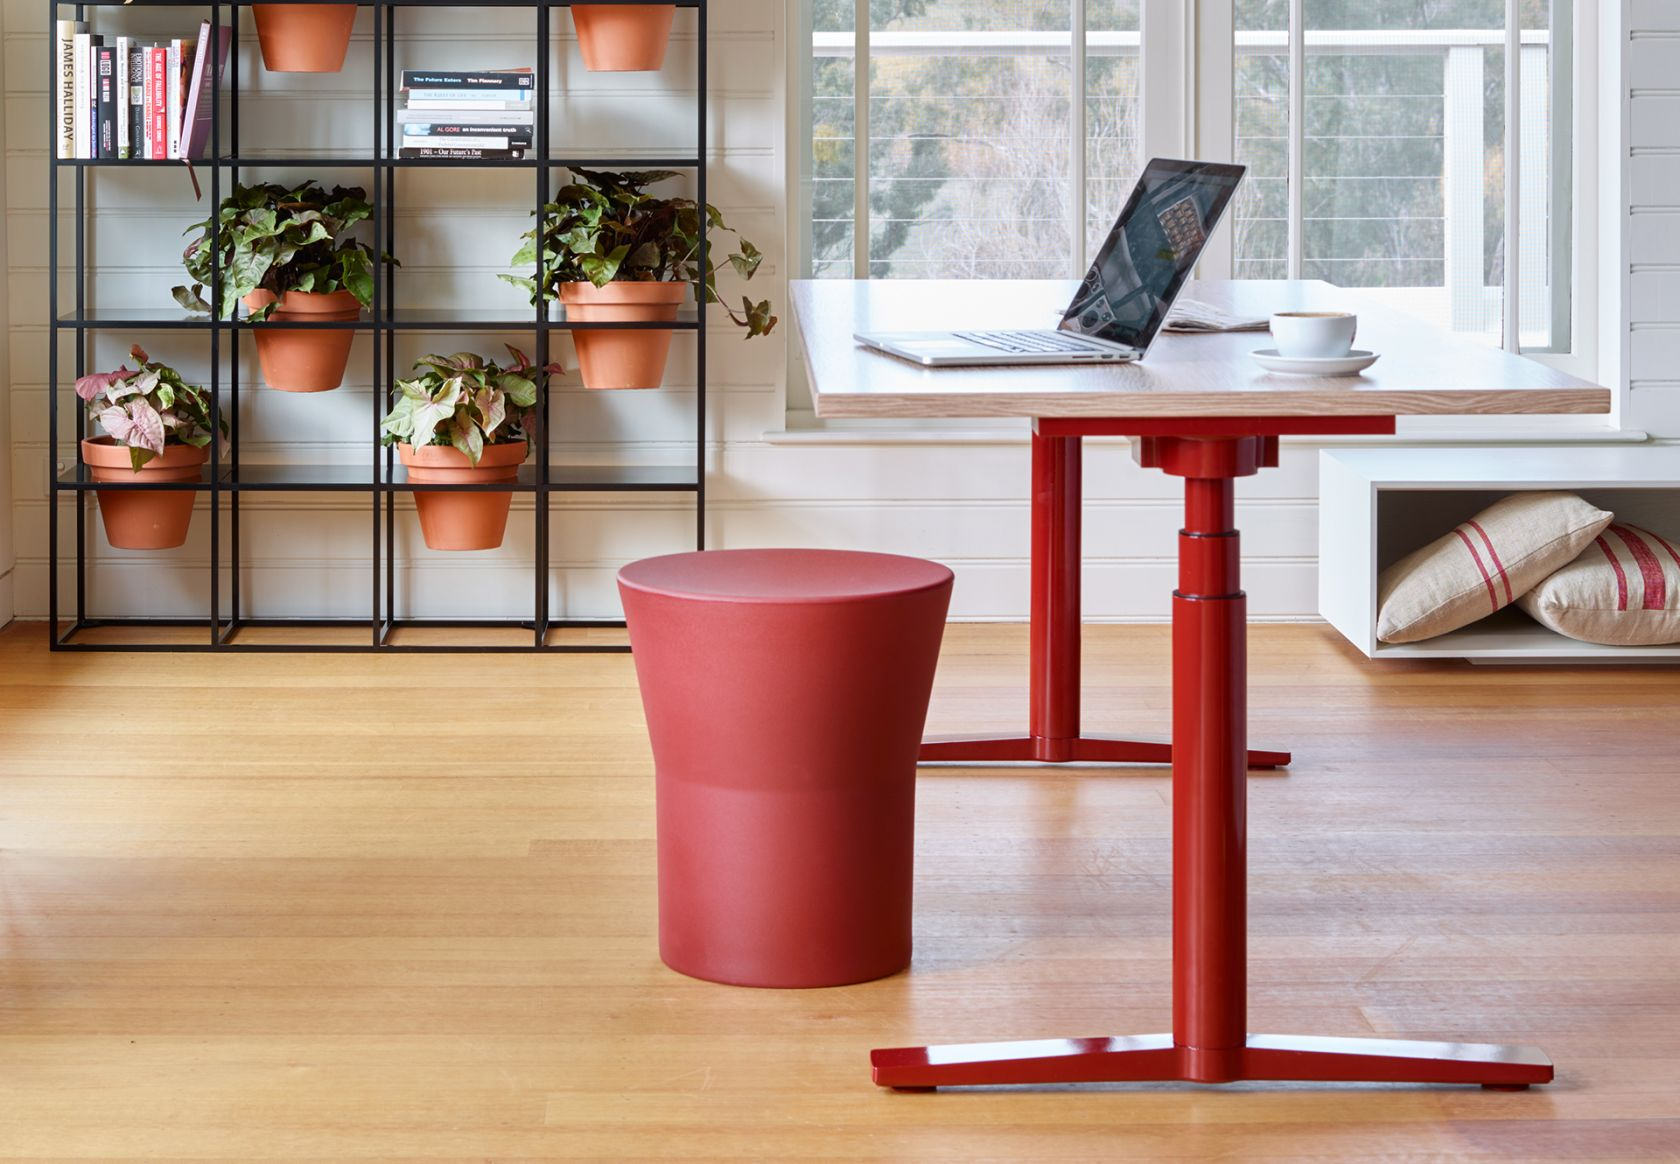 Tom Stool, Krossi and Vertical Garden